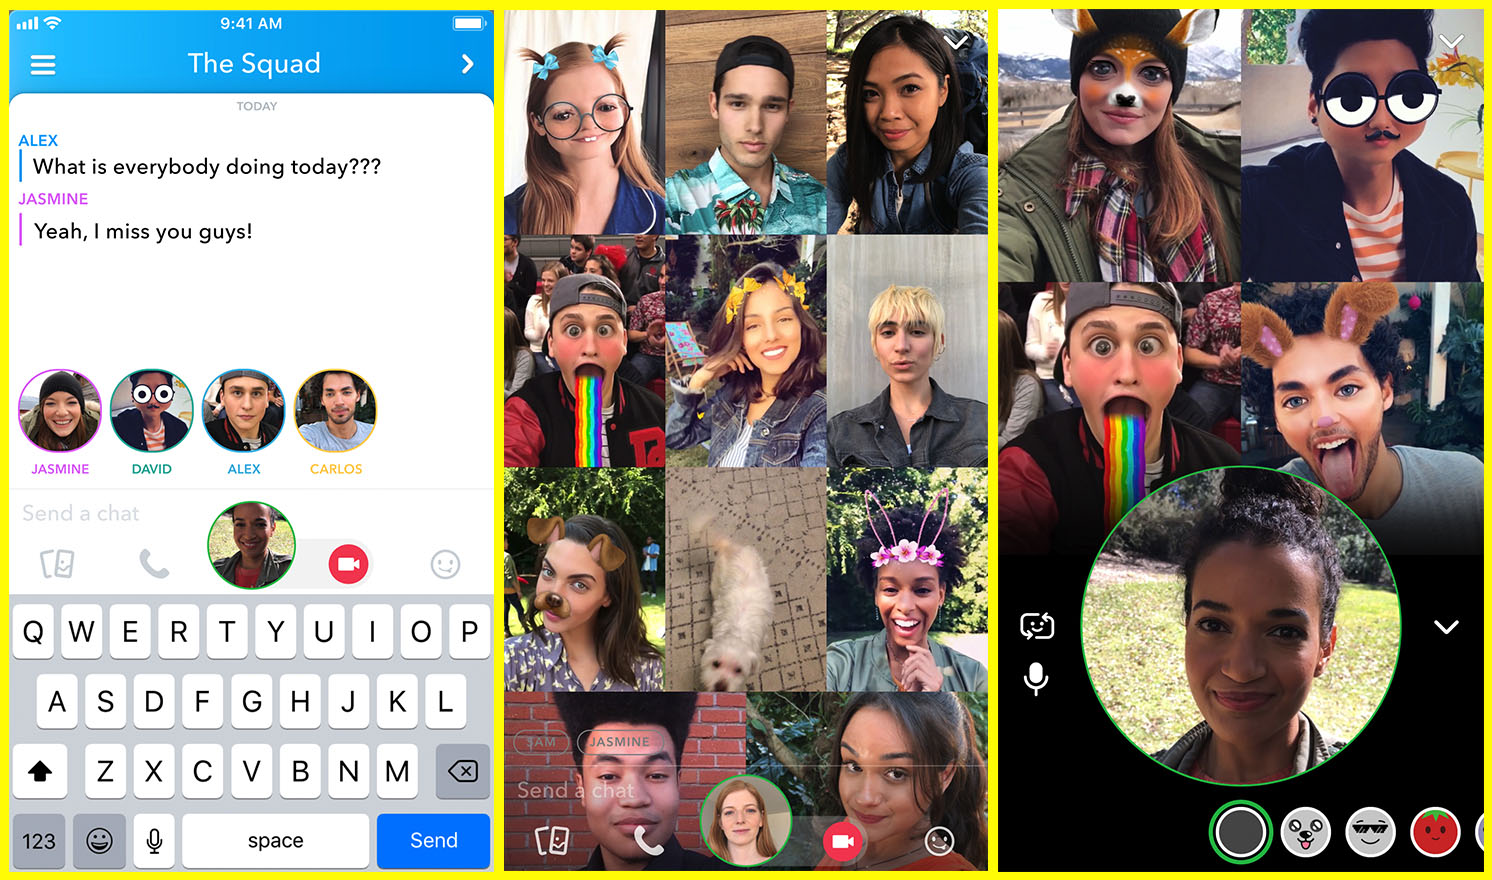 Snap introduces group video calls for up to 16 people | TechCrunch